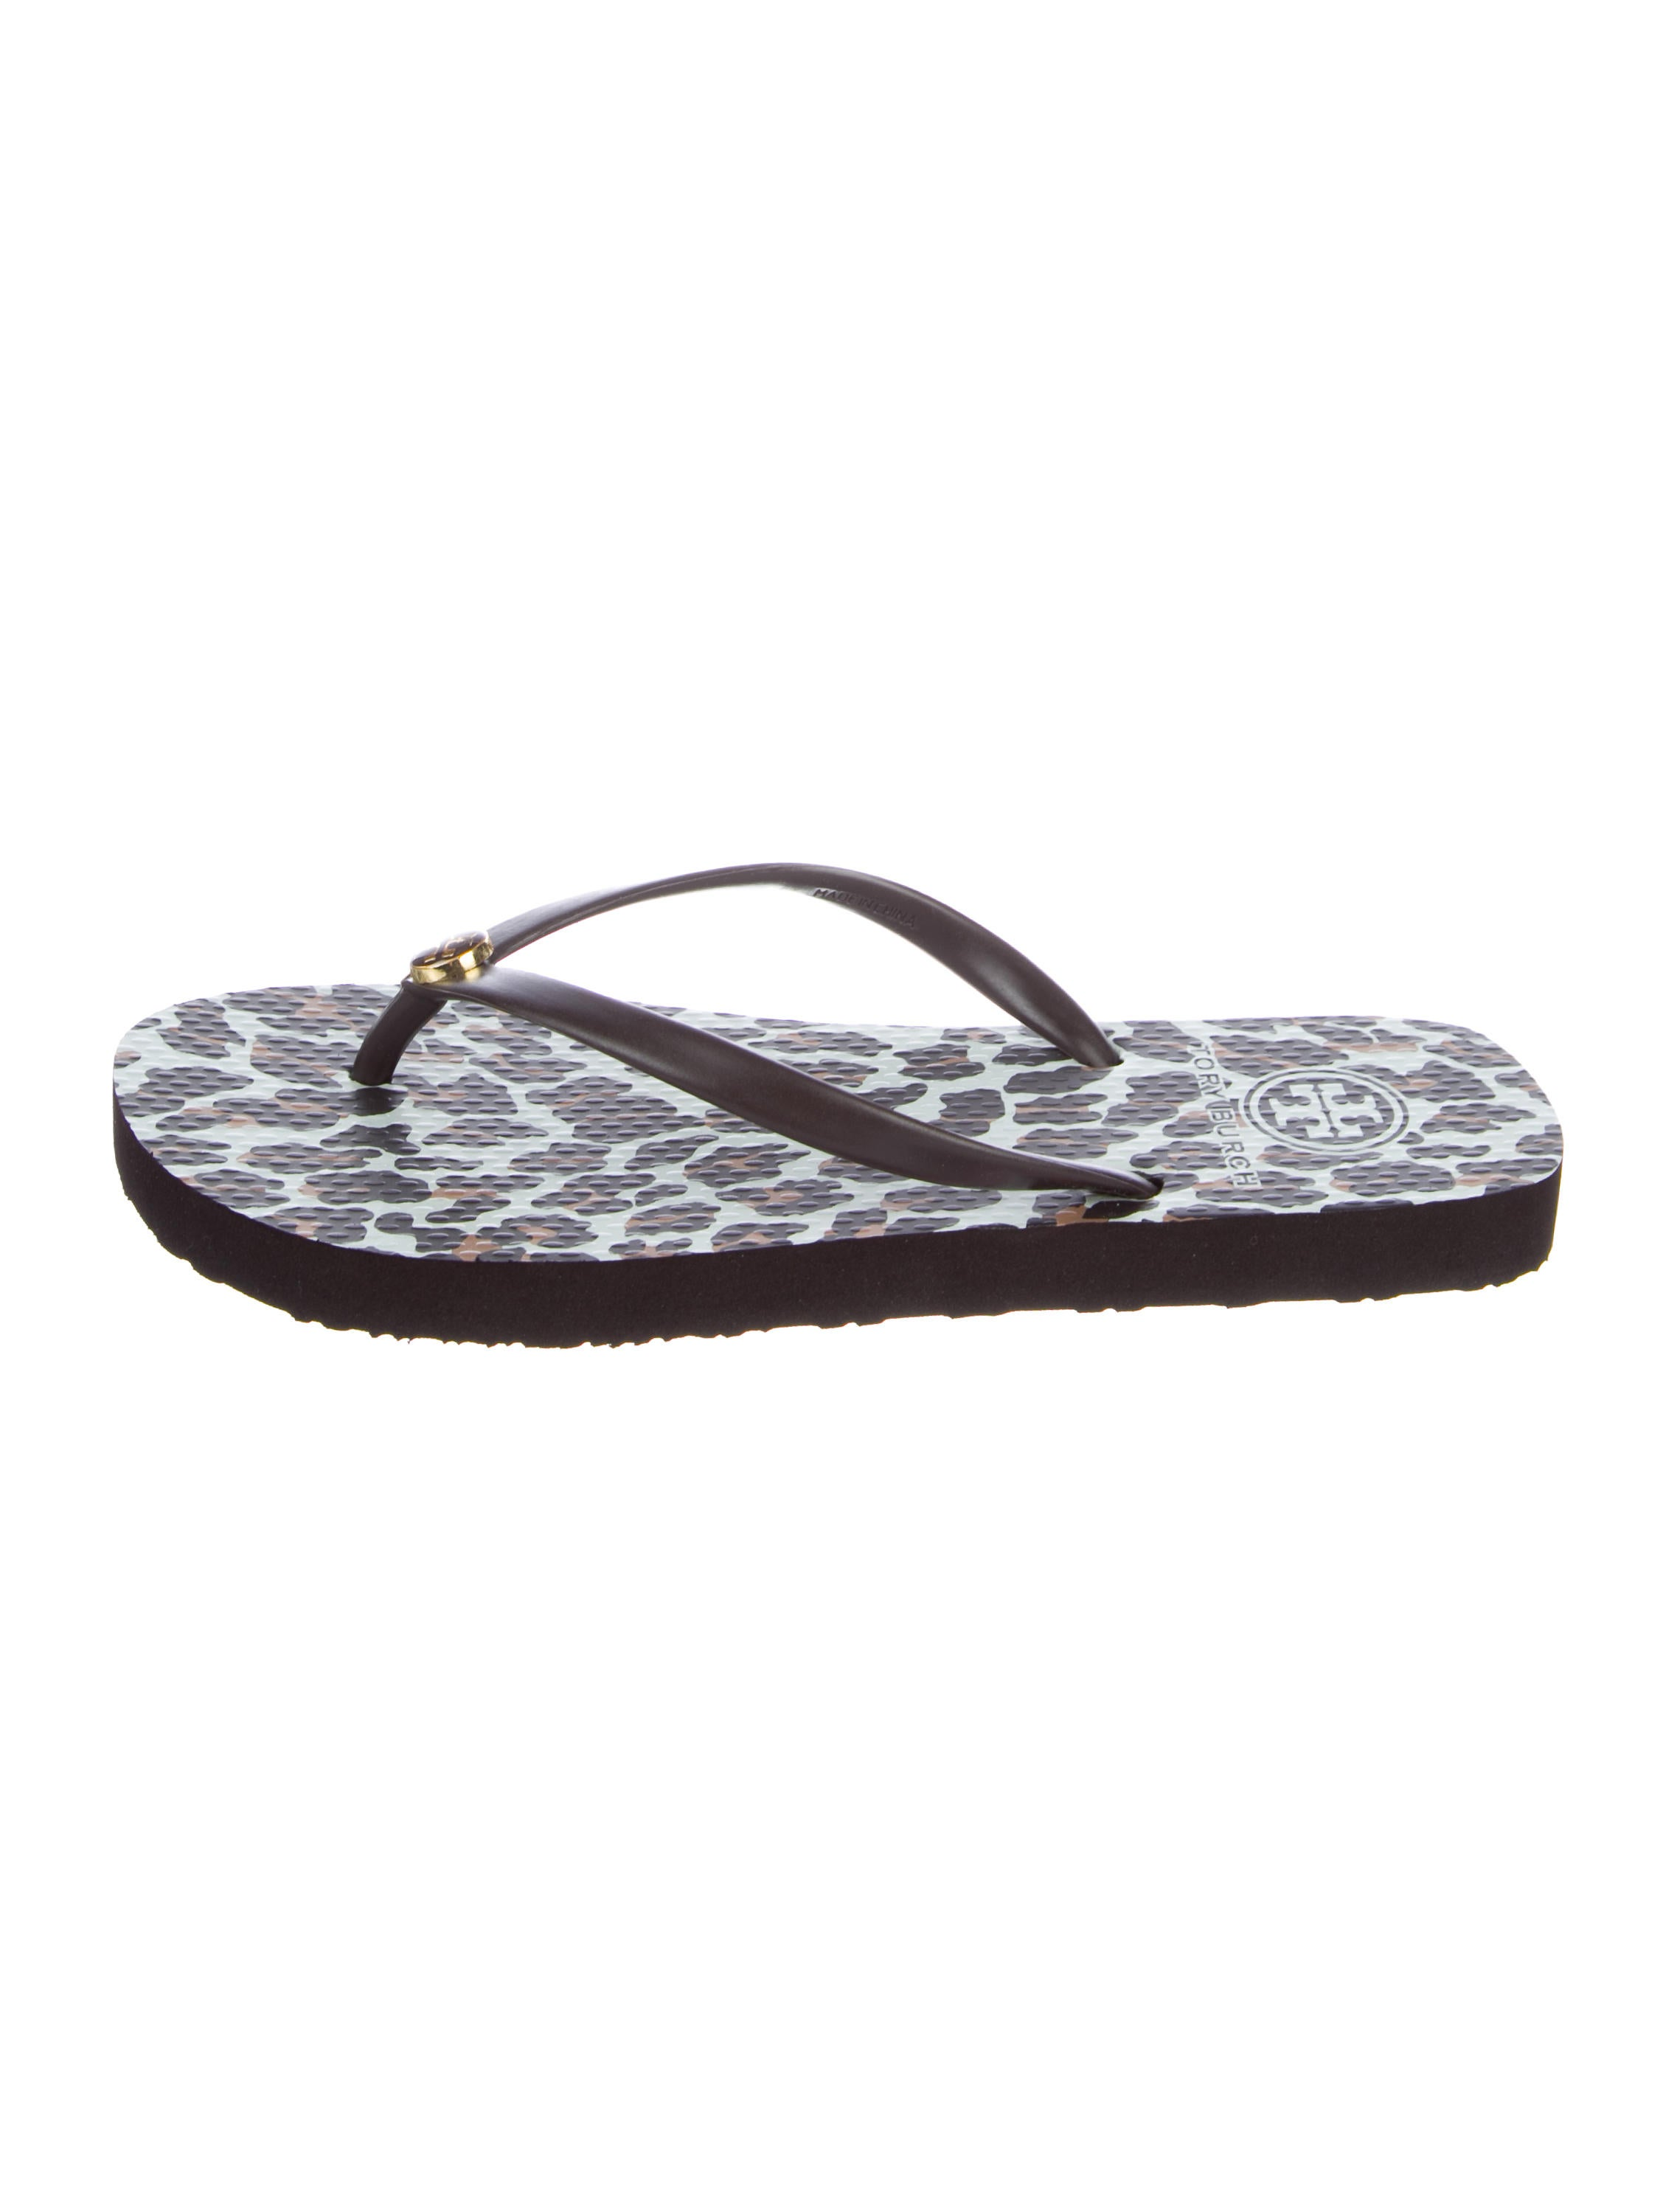 64eb20a40c01a Tory Burch Reva Printed Thong Sandals w  Tags - Shoes - WTO135609 ...